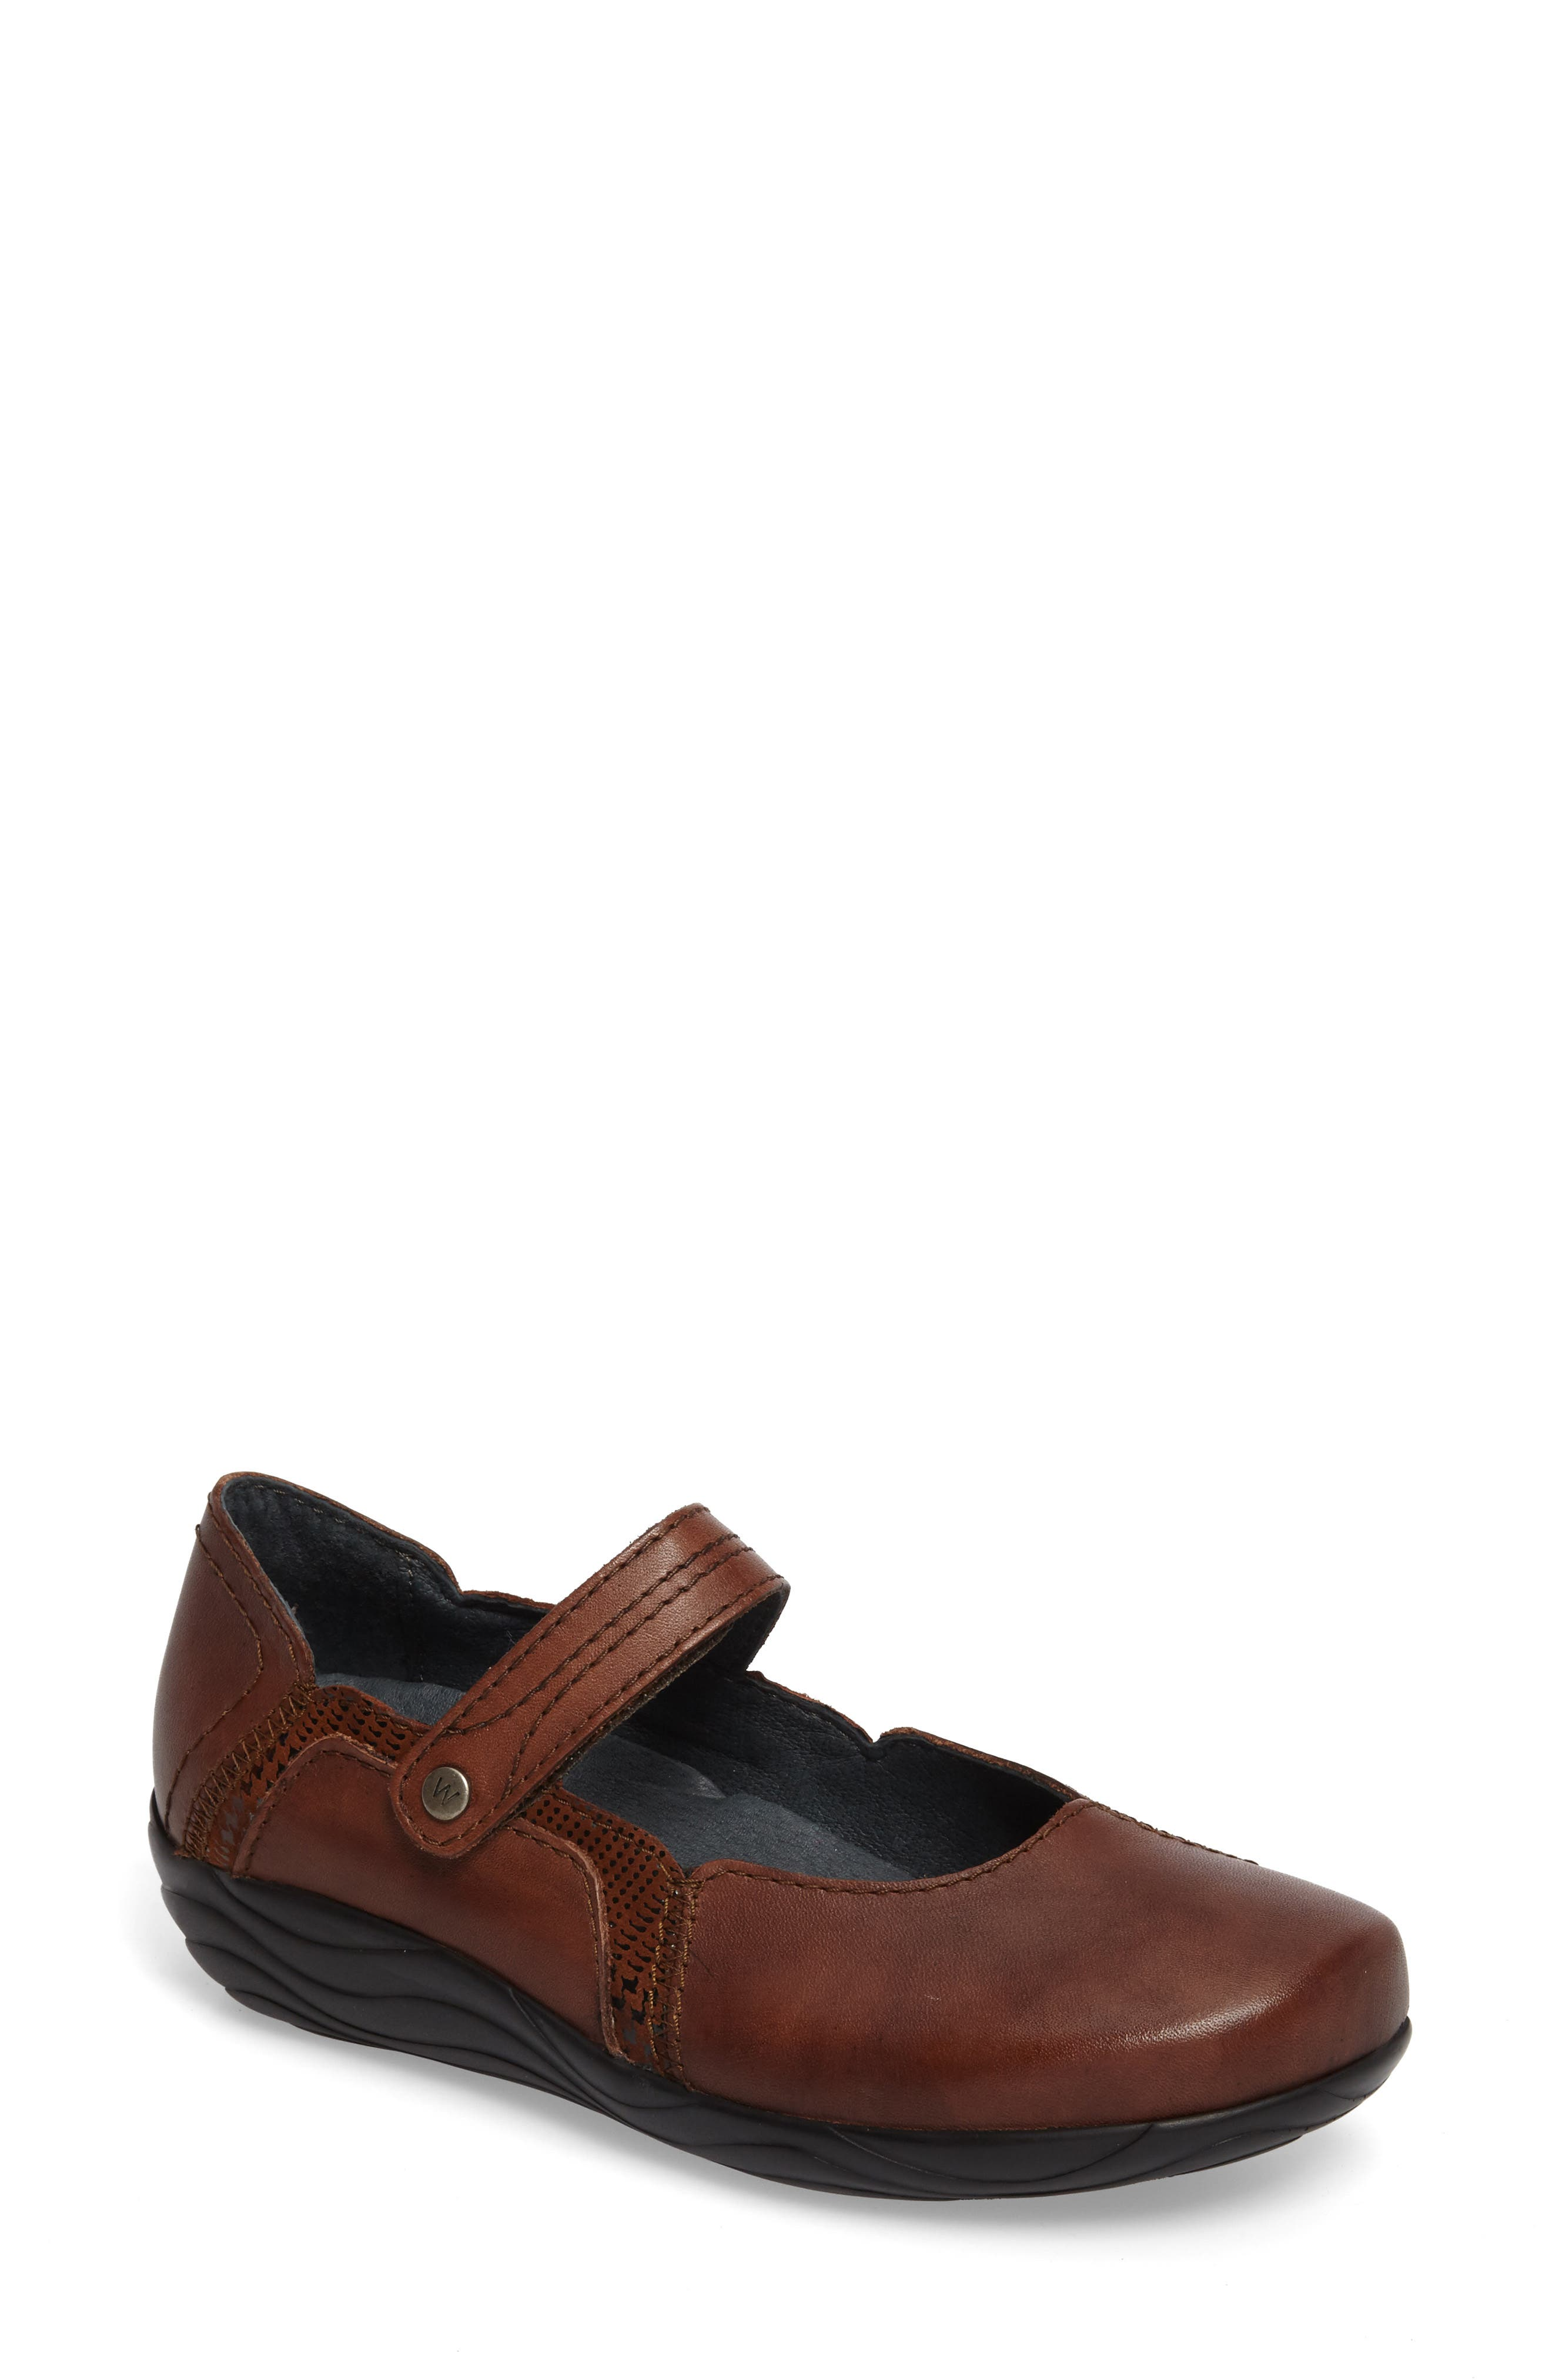 Gila Mary-Jane Flat,                         Main,                         color, Cognac Leather